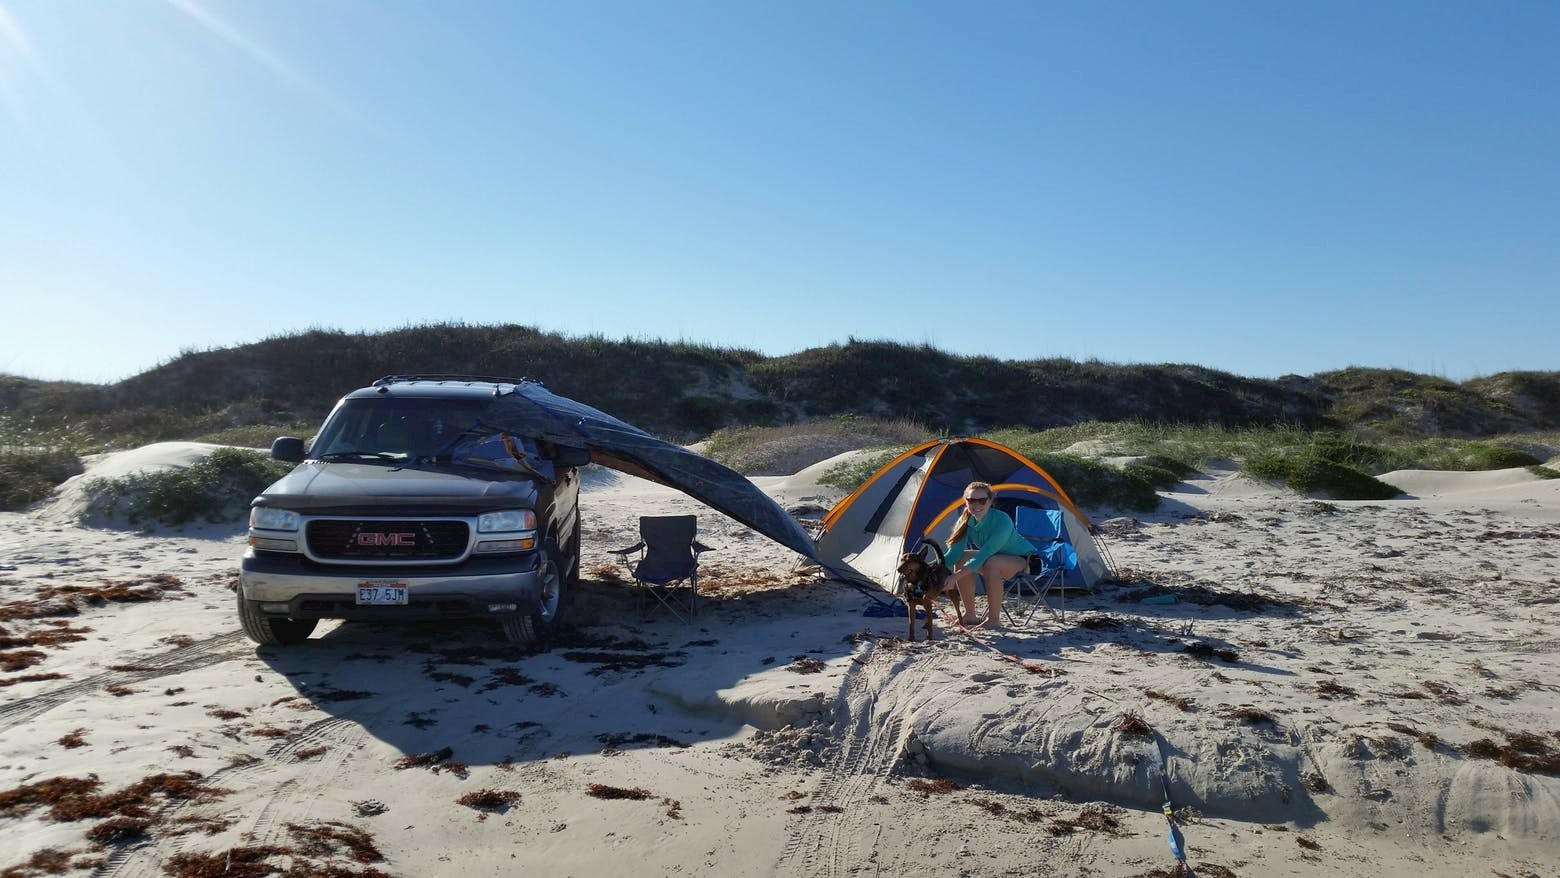 Women set up beside tent and SUV on the beach.